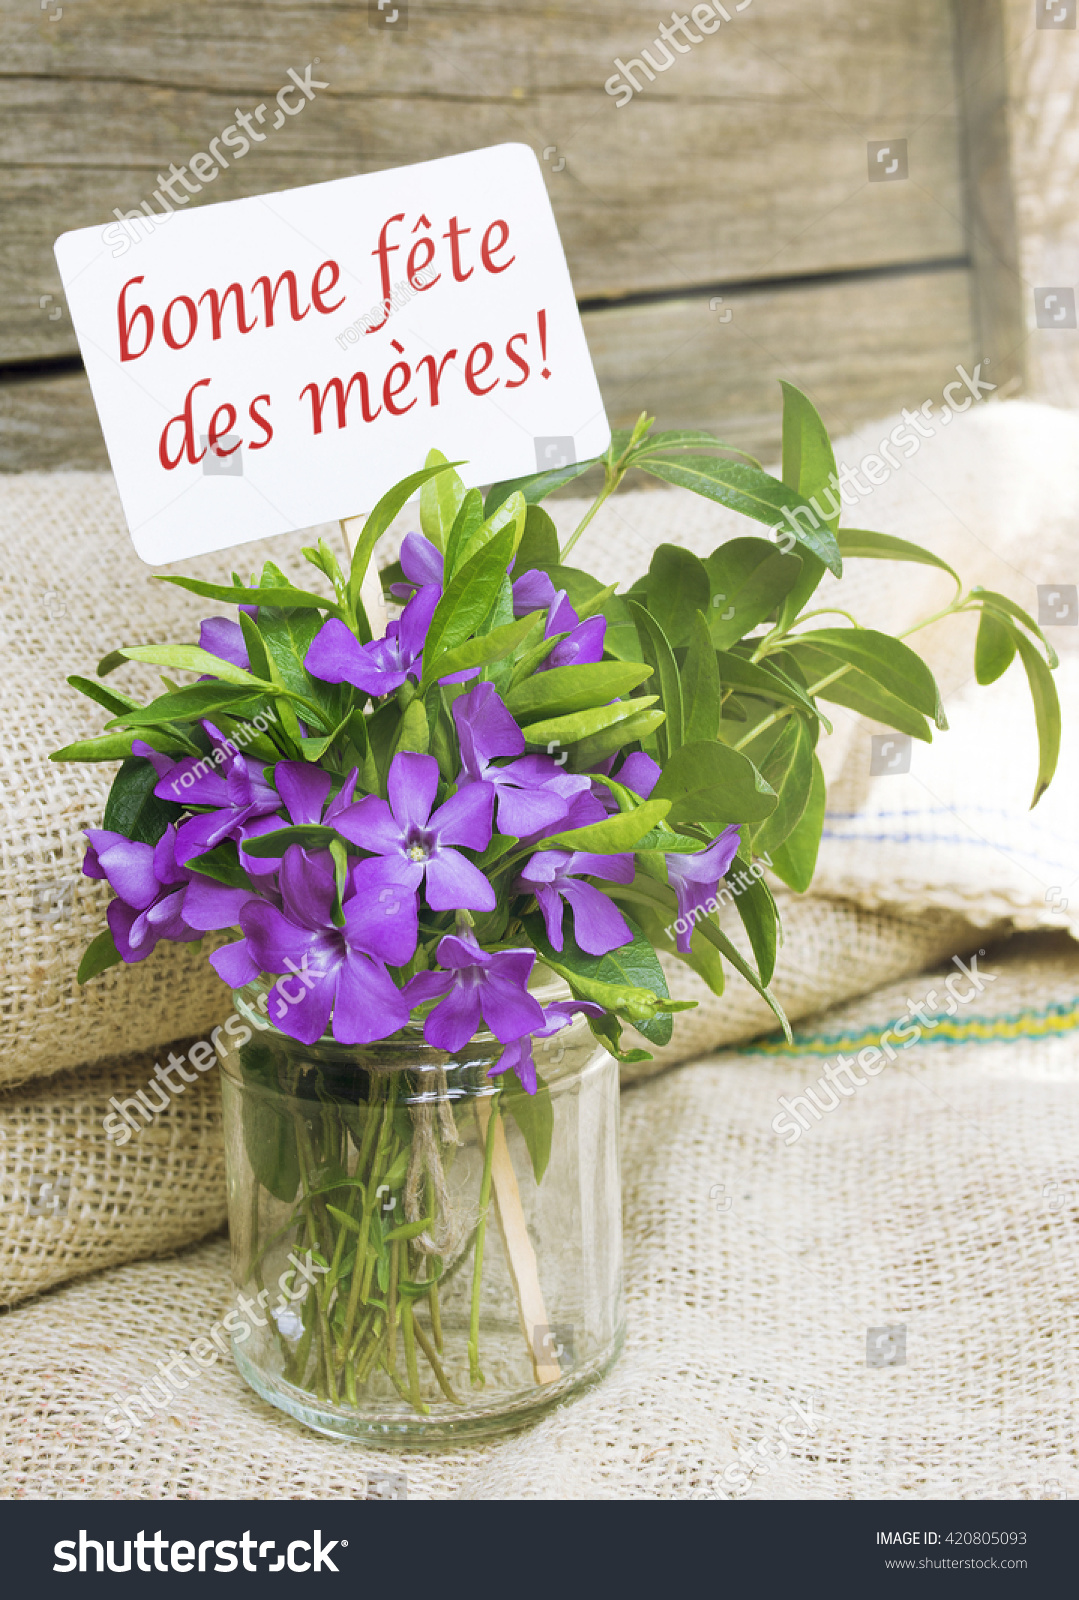 Enjoy Mothers Day French Flower Bouquet Stock Photo (Royalty Free ...